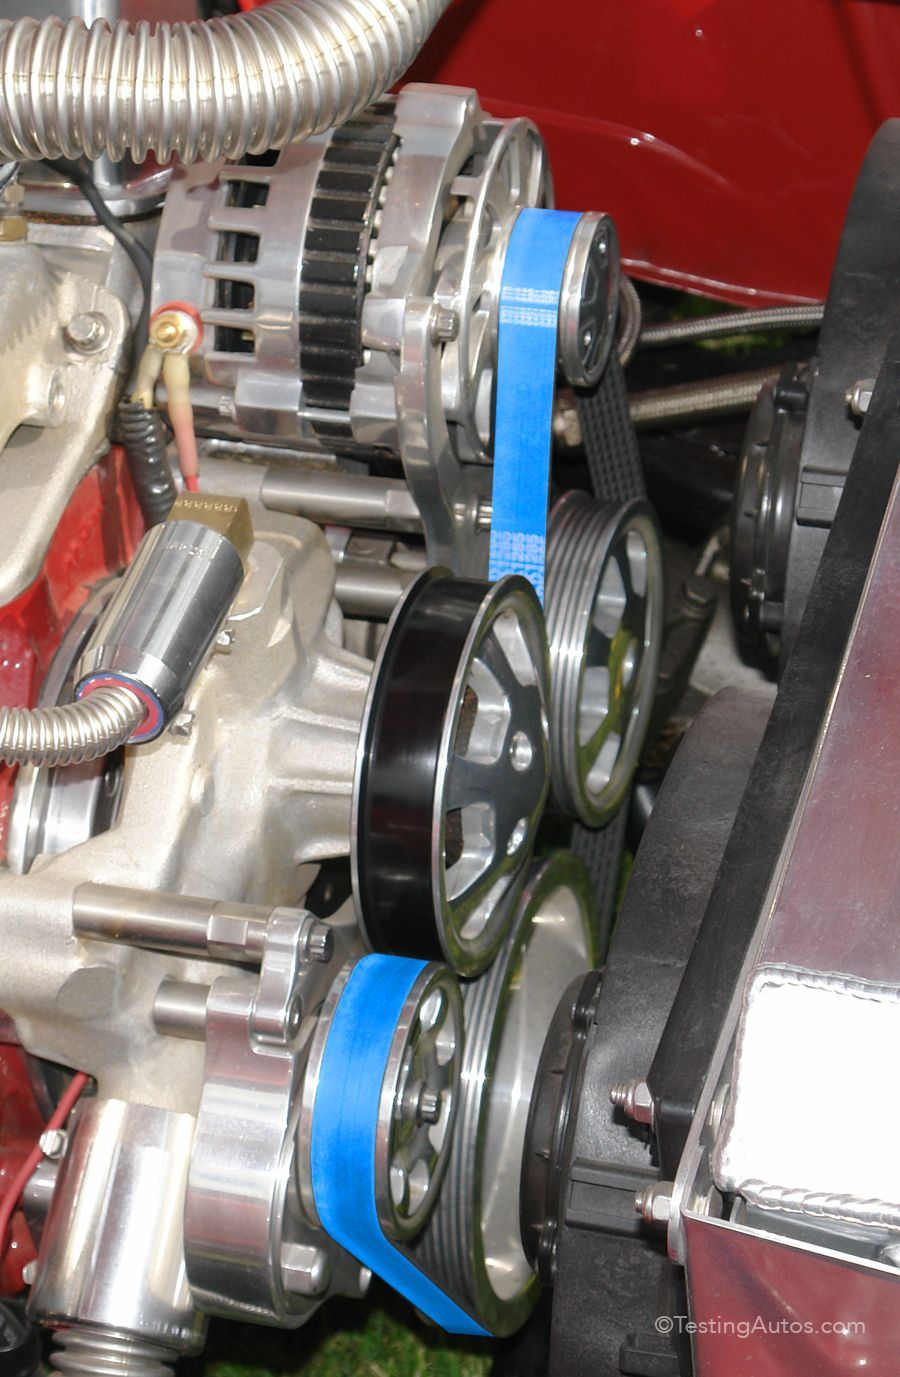 Does your drive belt need replacing? Car mechanic